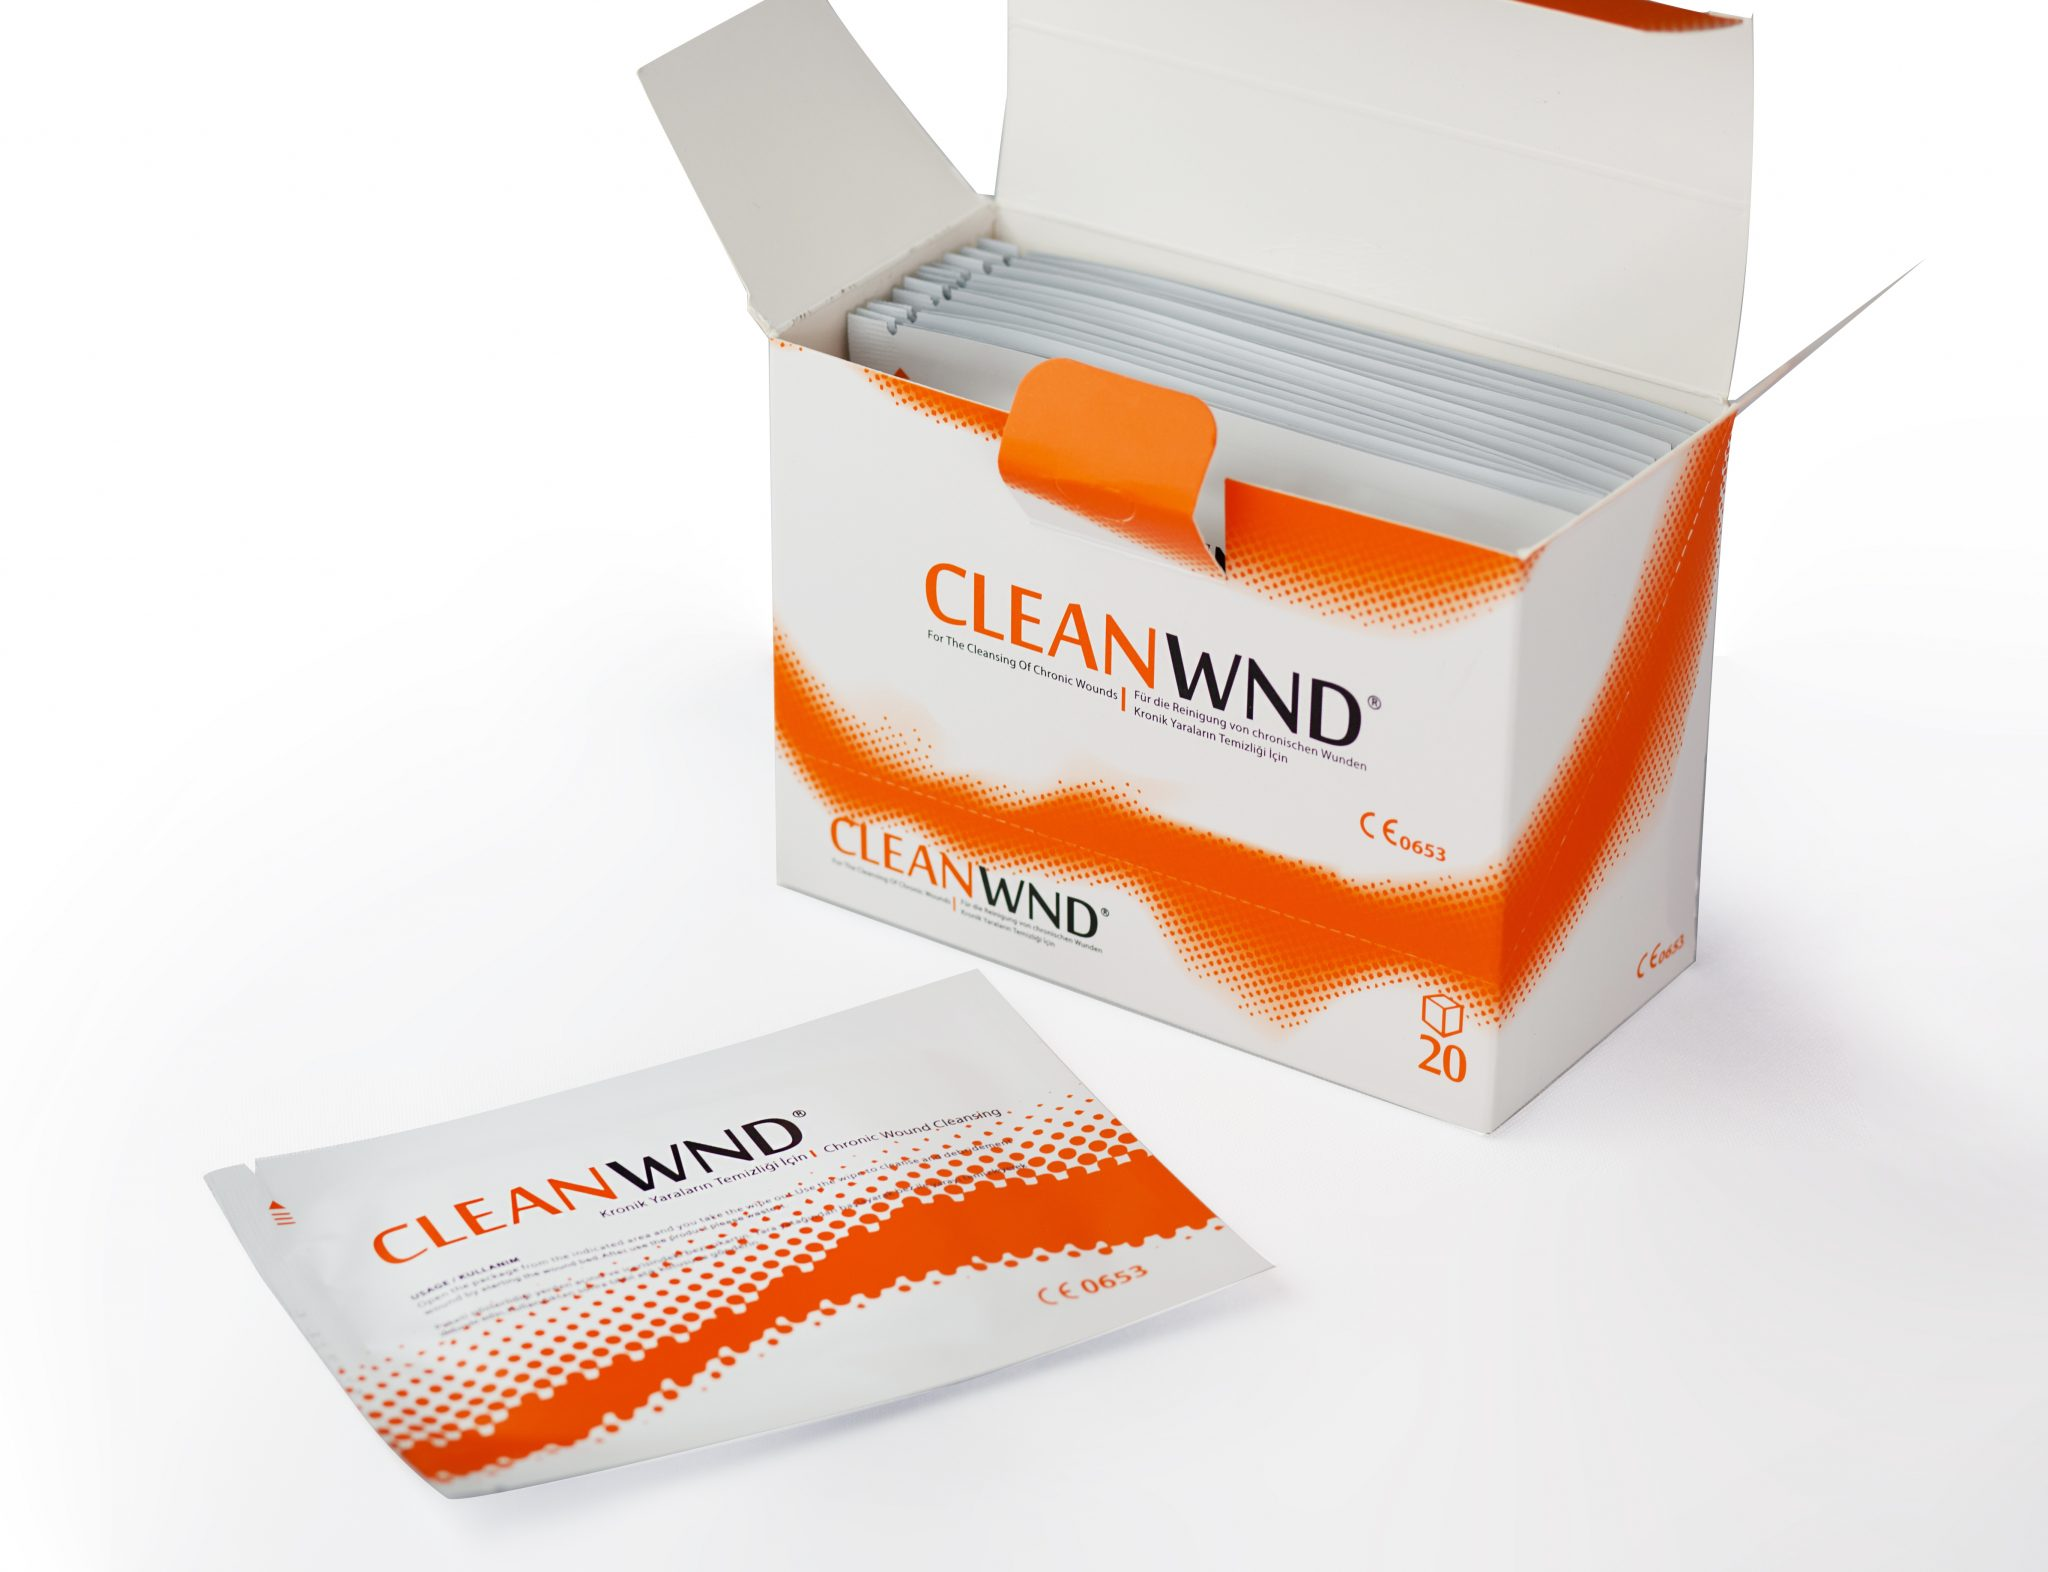 CleanWnd image cover